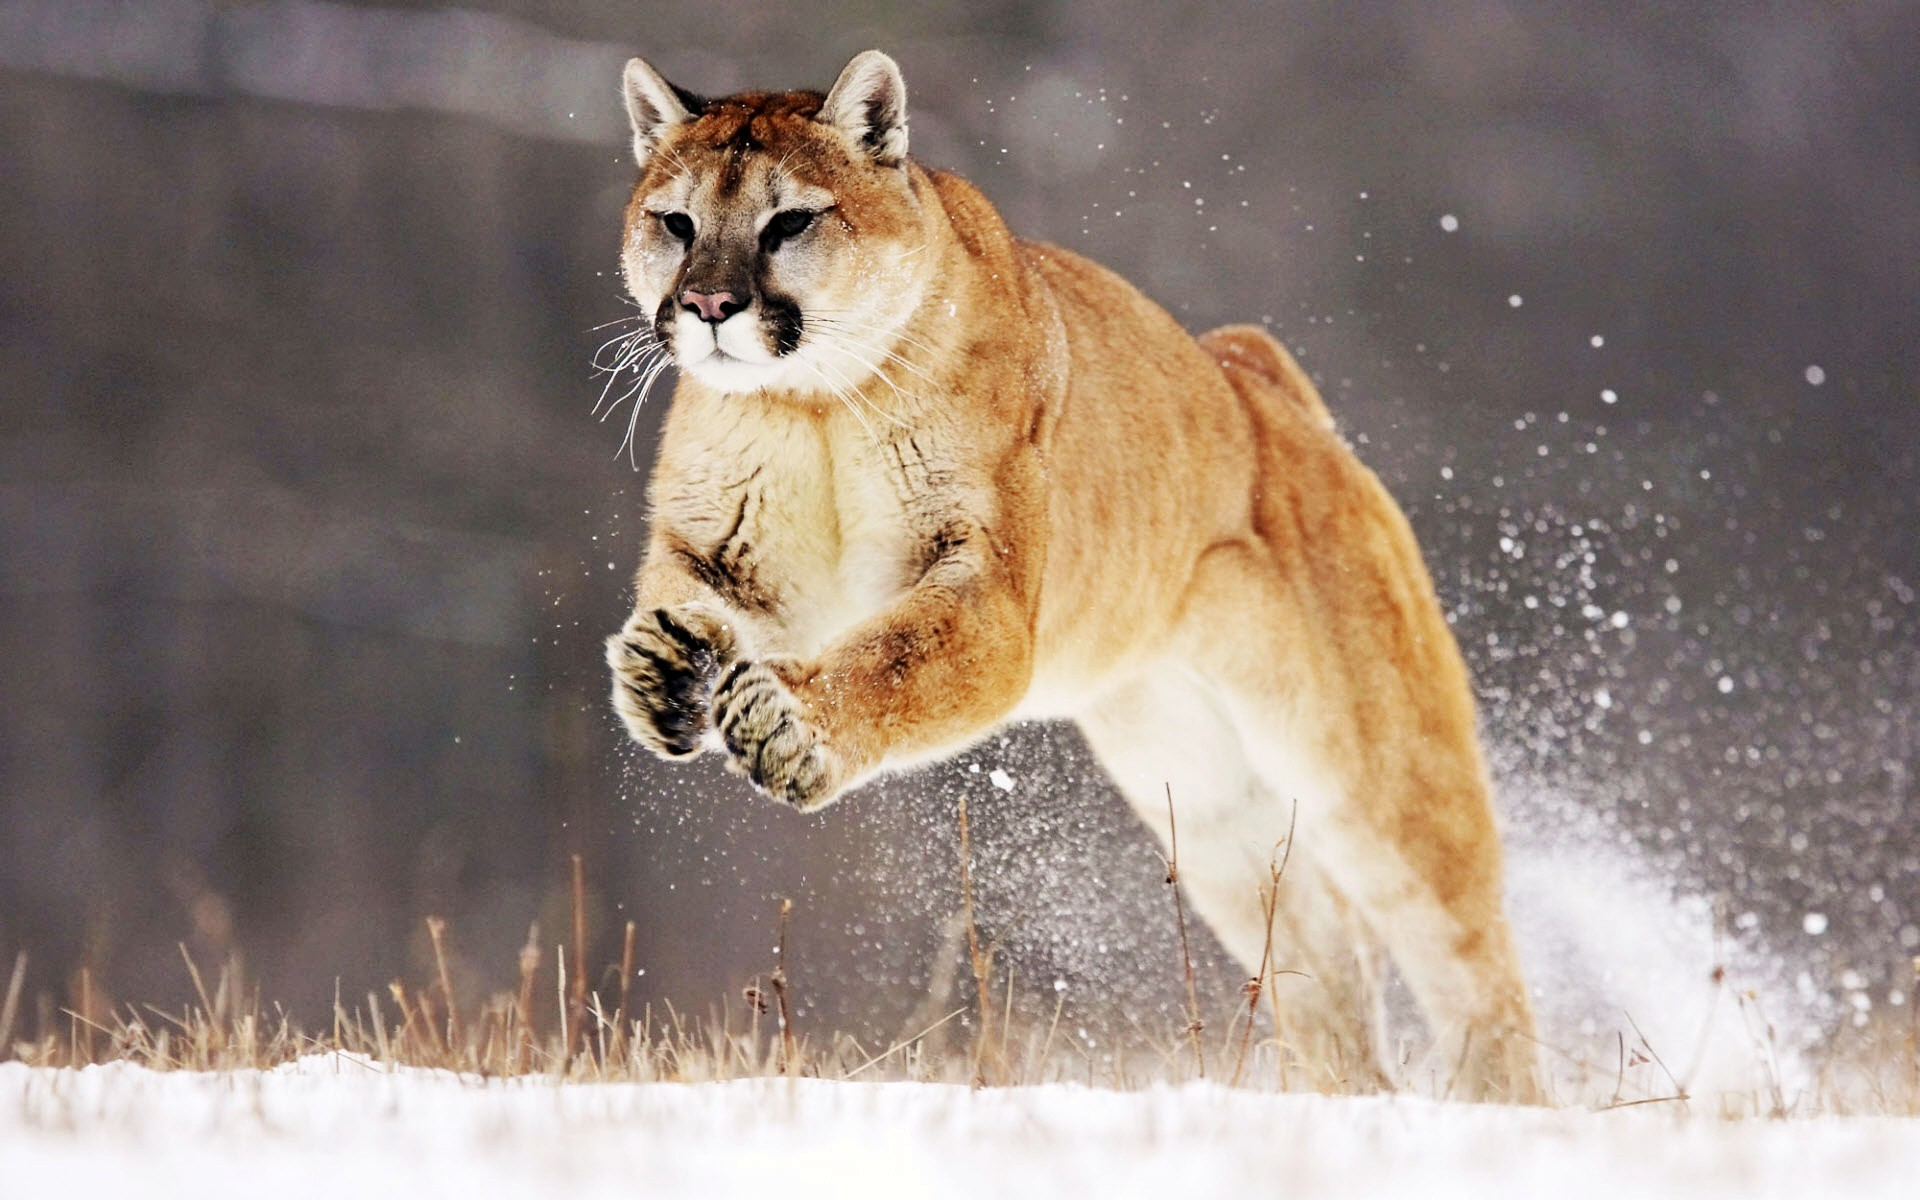 hunting images with mountain lion in background